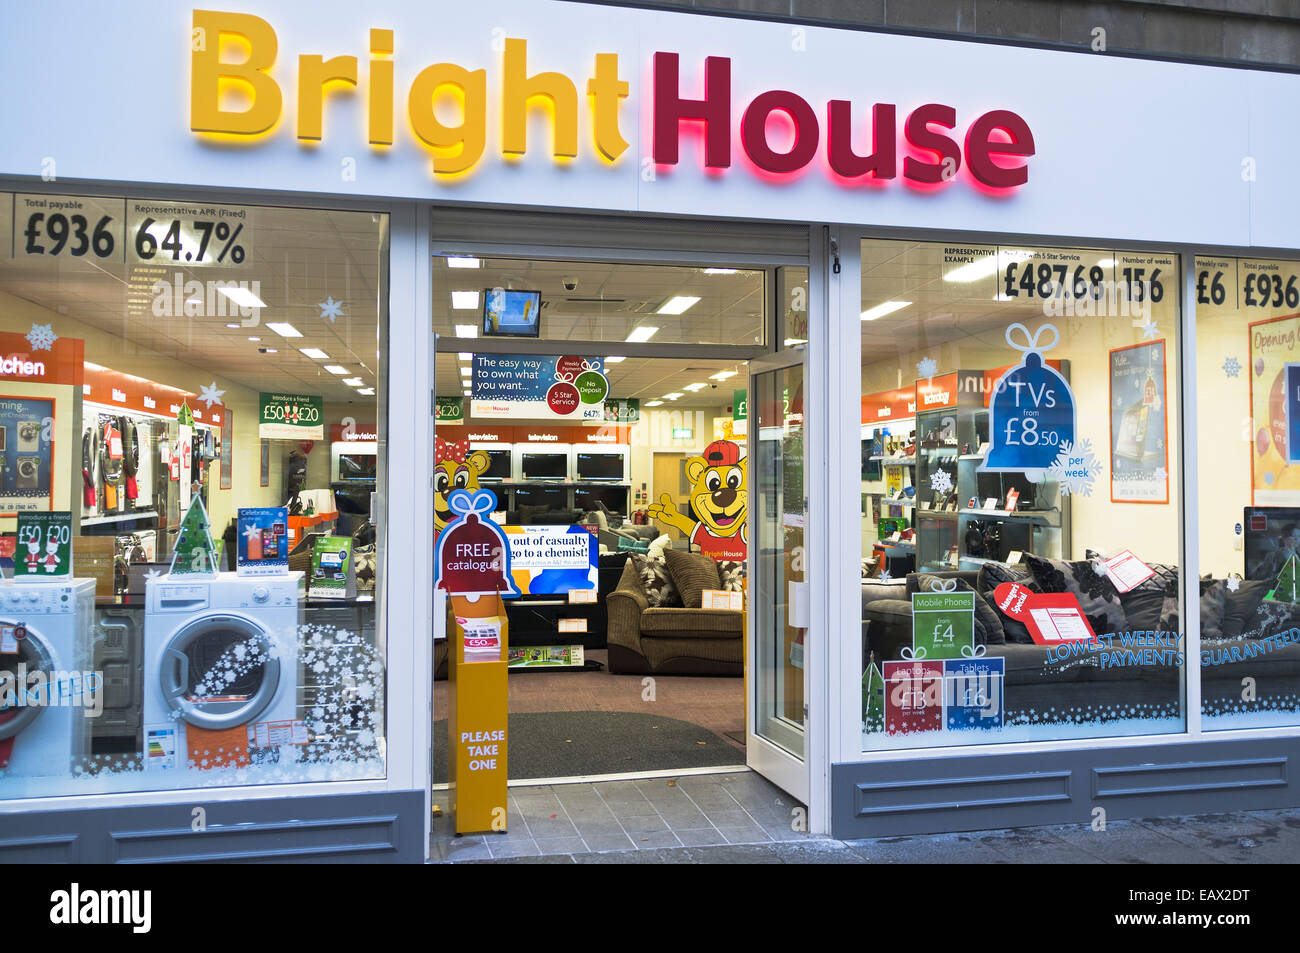 Dh bright house shop uk electrical appliance shop exterior for Right house